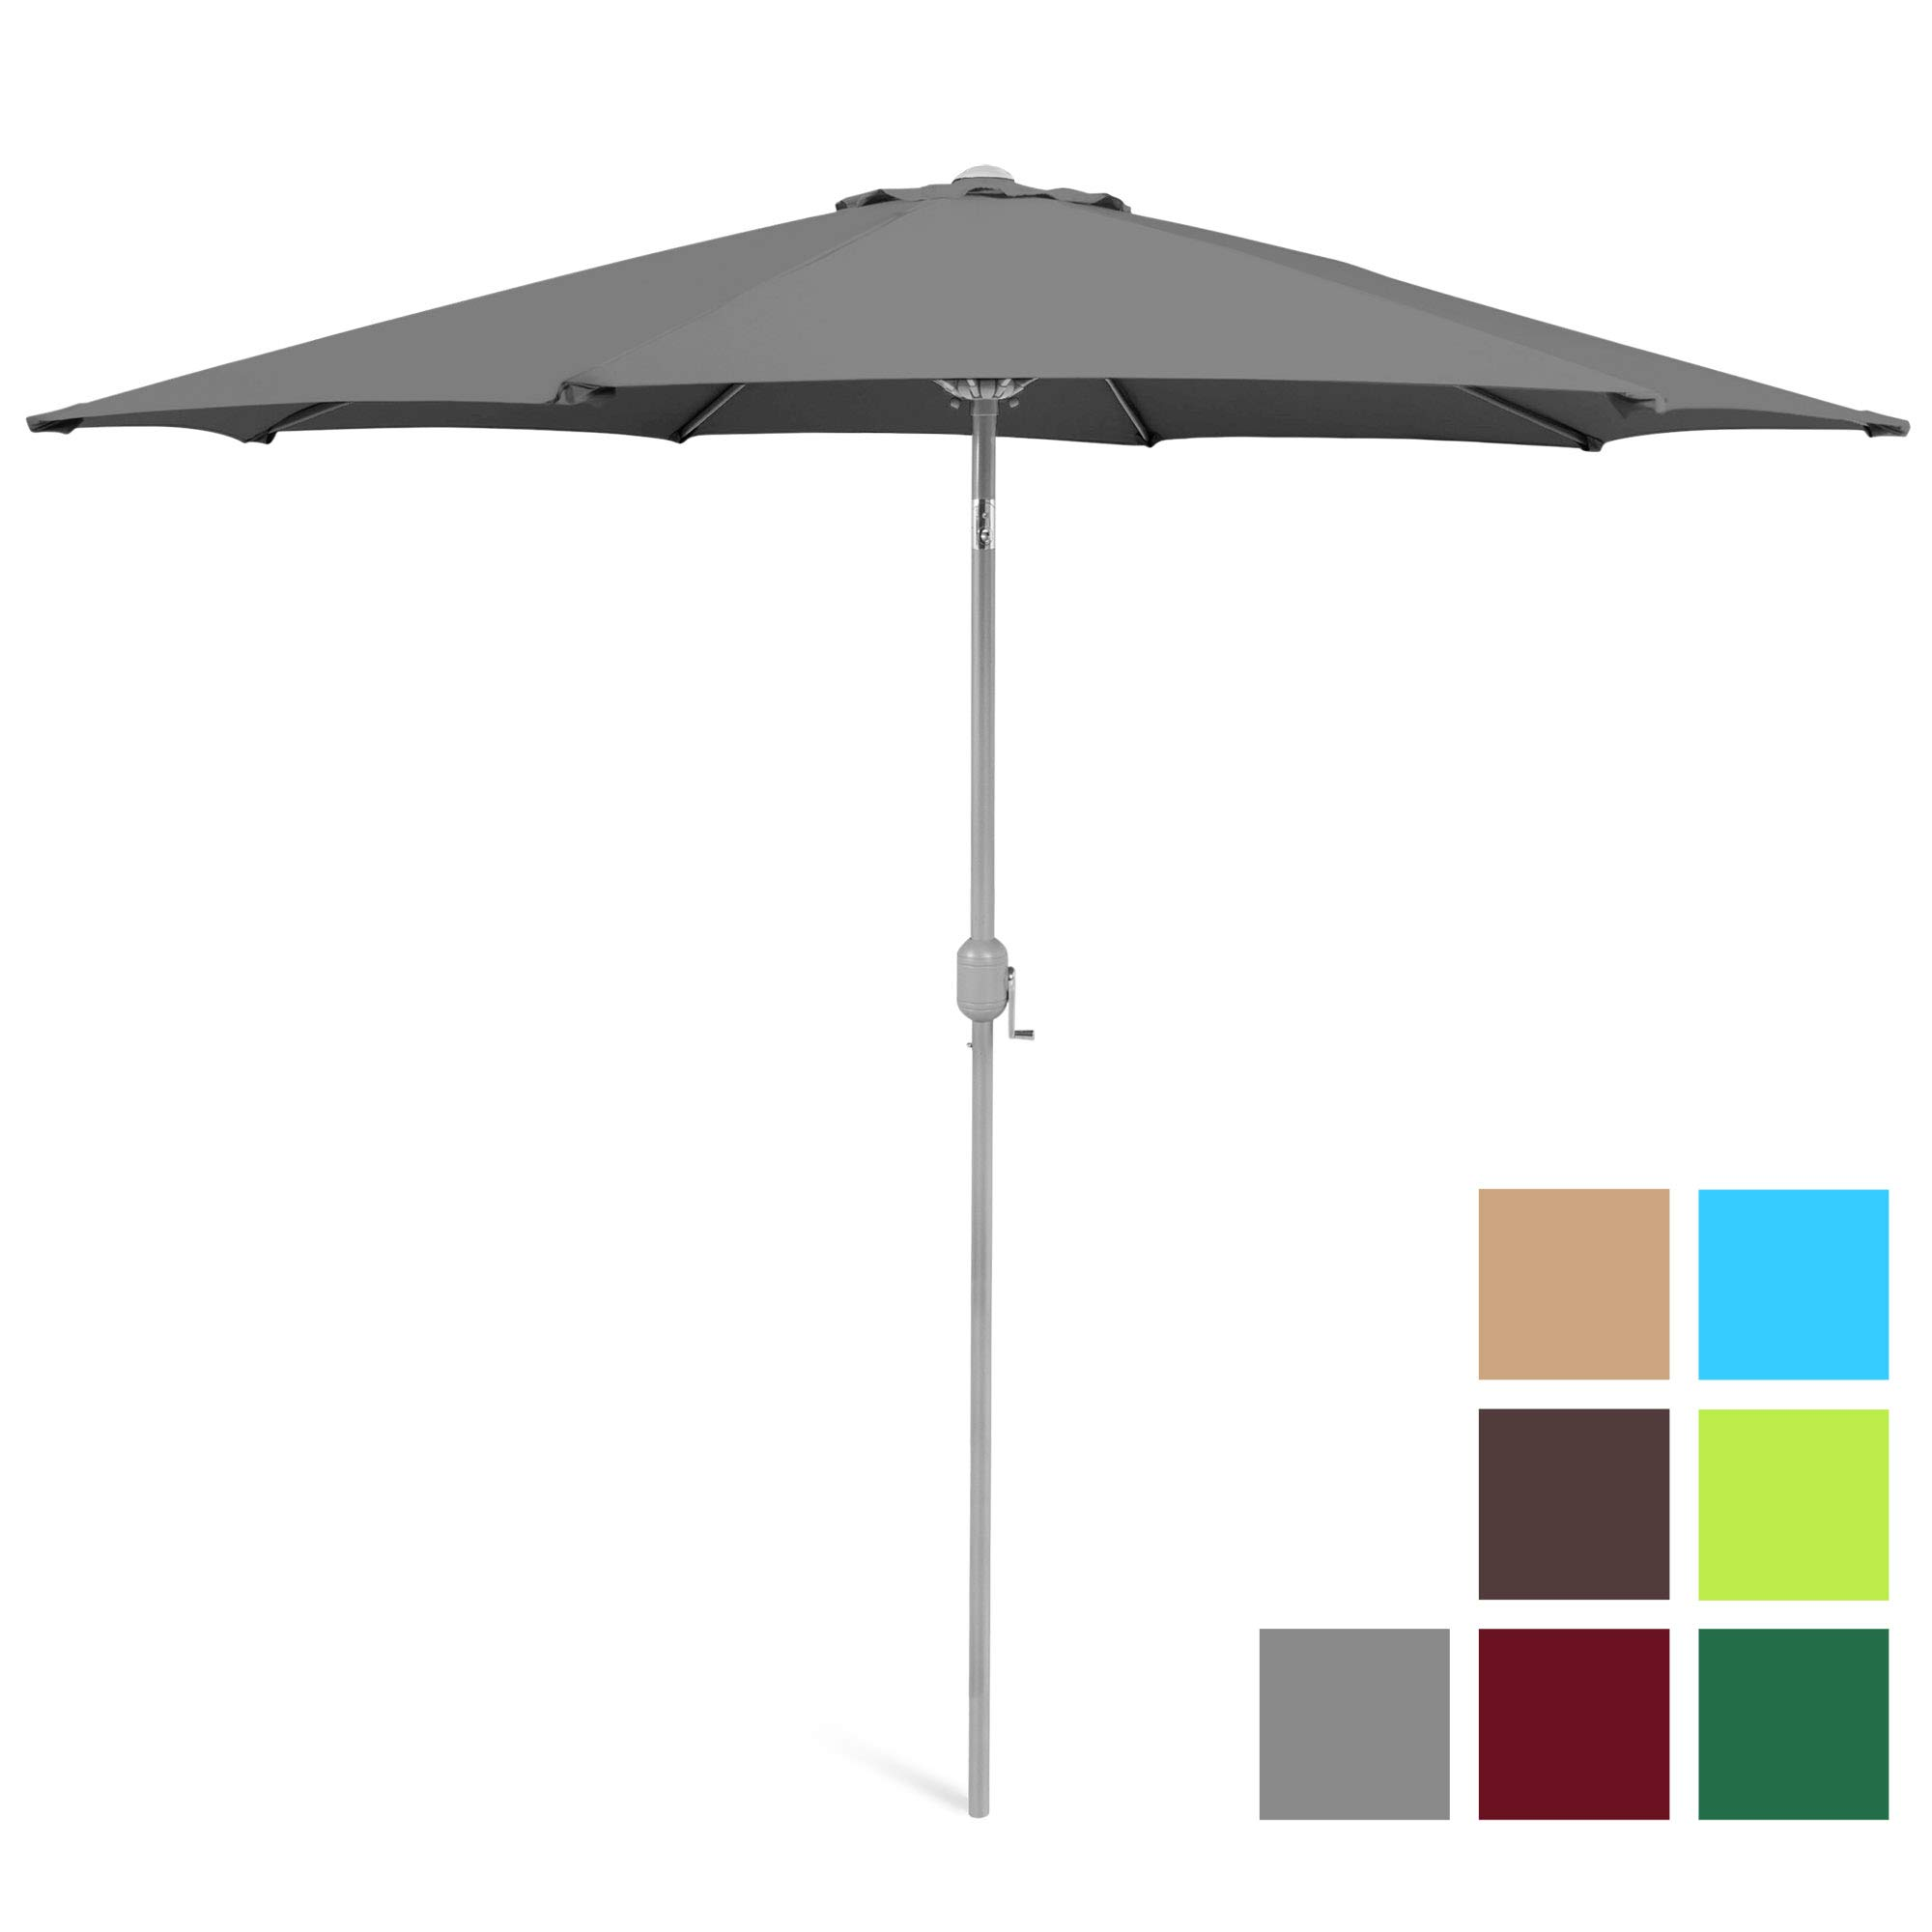 Best Choice Products 9-Foot Outdoor Aluminum Polyester Market Patio Umbrella with Crank Tilt Adjustment, Gray by Best Choice Products